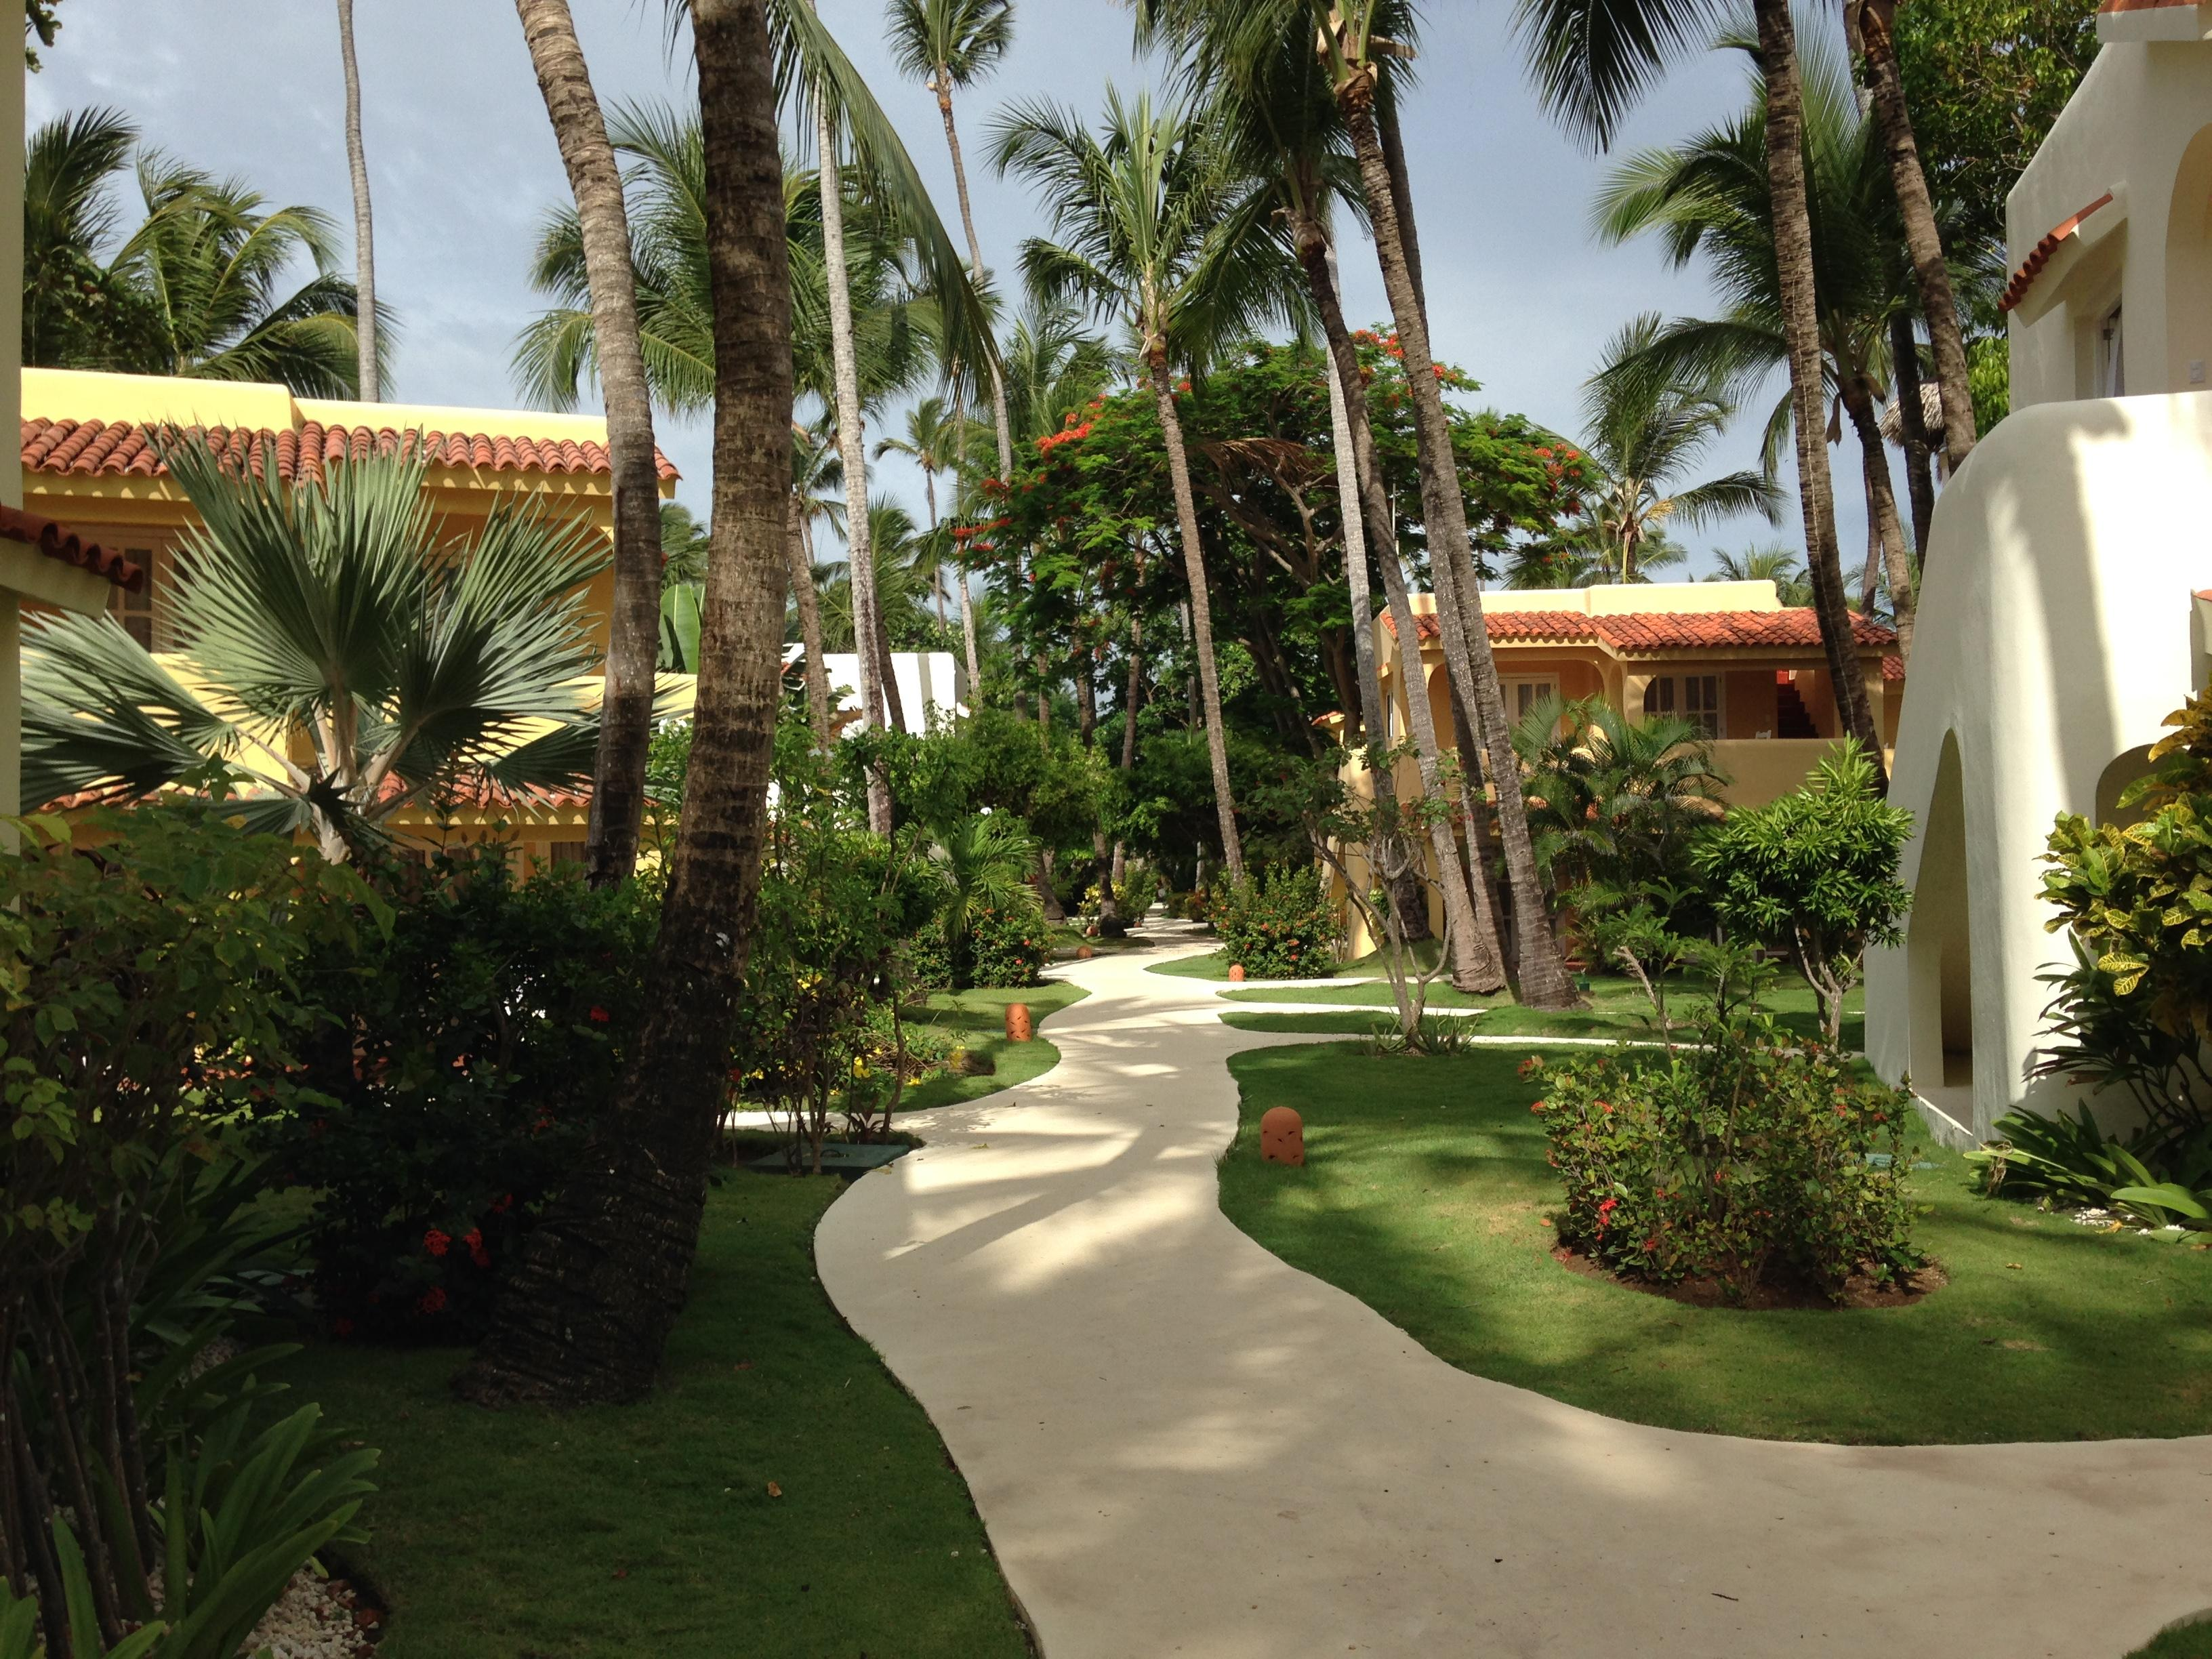 Pathway from beach to rooms